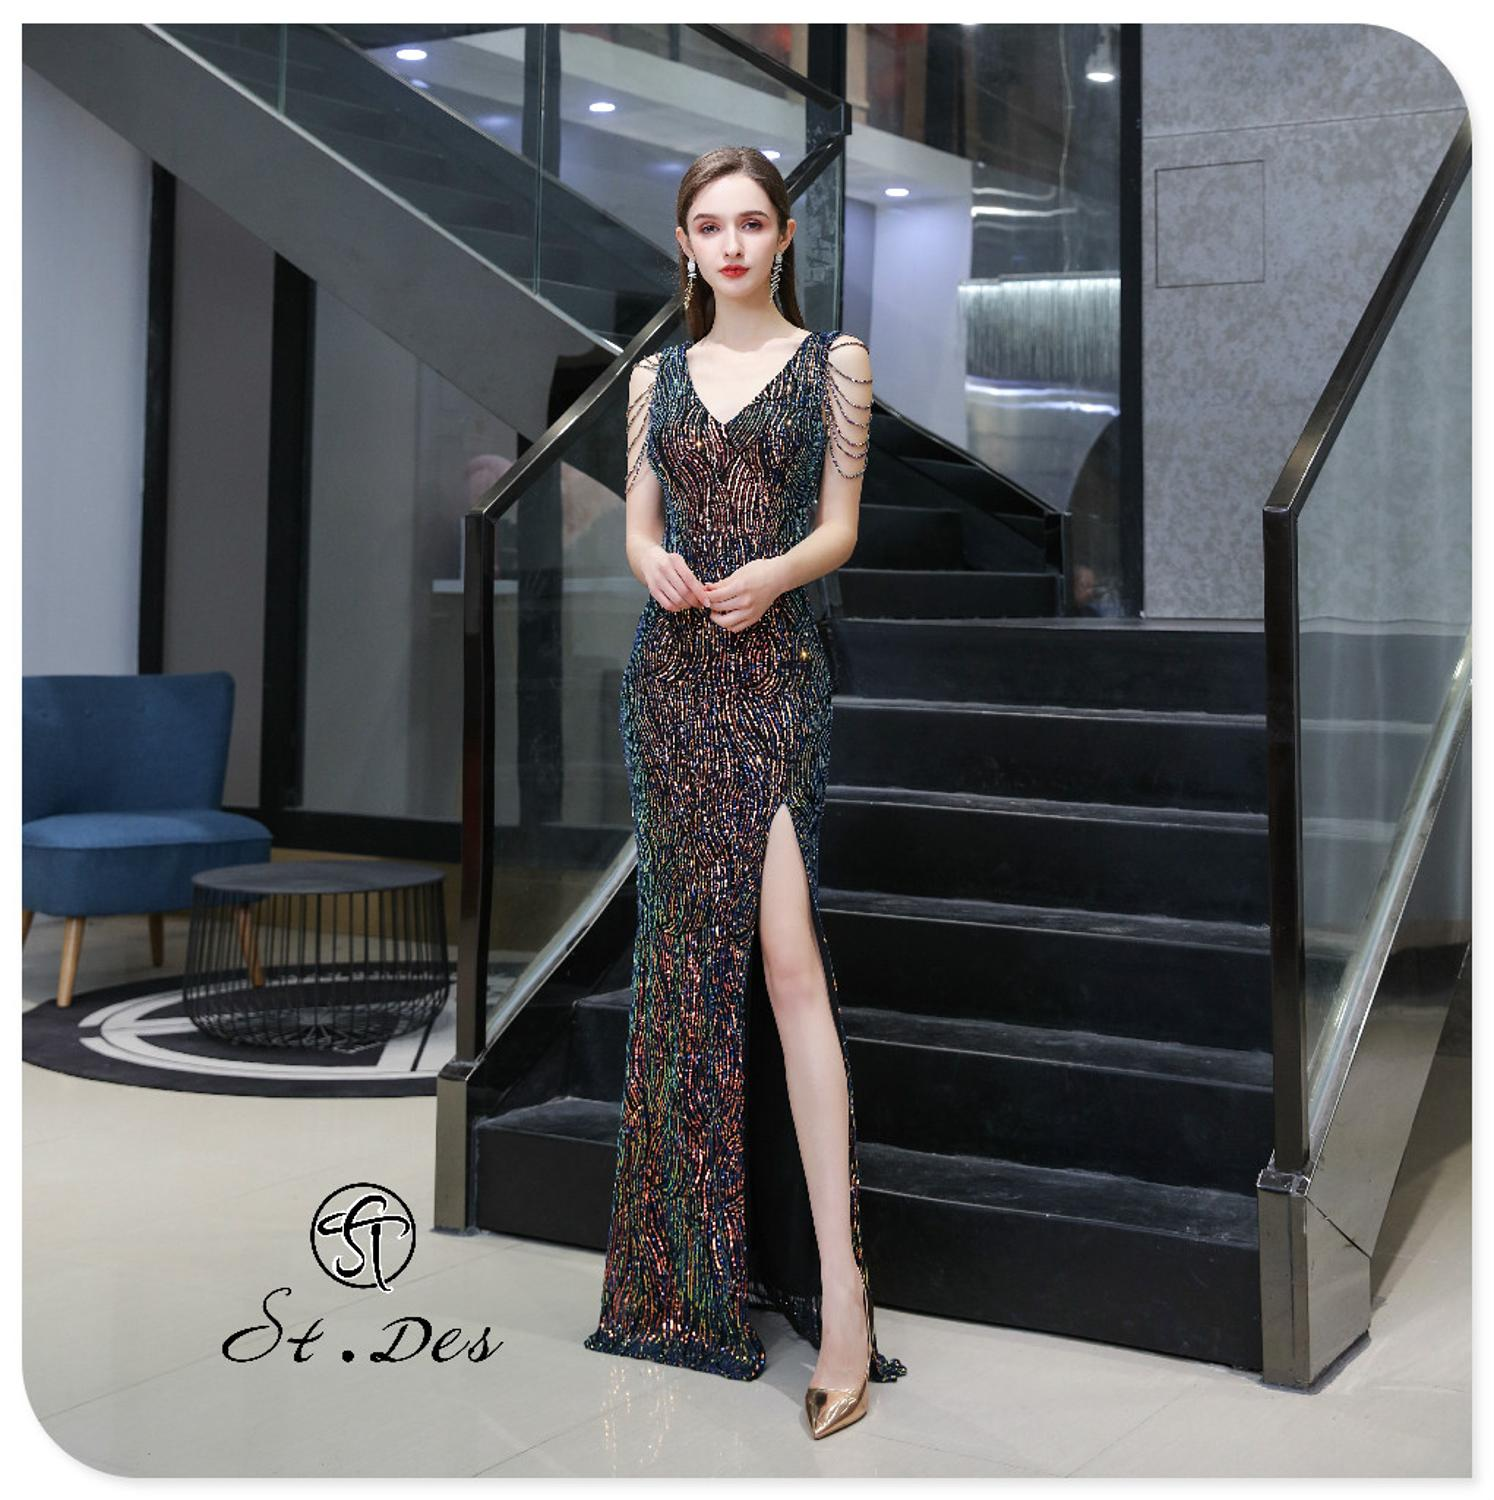 2020 S.T.DES New Arrival V-neck Black Shining Beading Floor Length Sequined Sparkling Sexy Split Hem Evening Gowns Party Dress